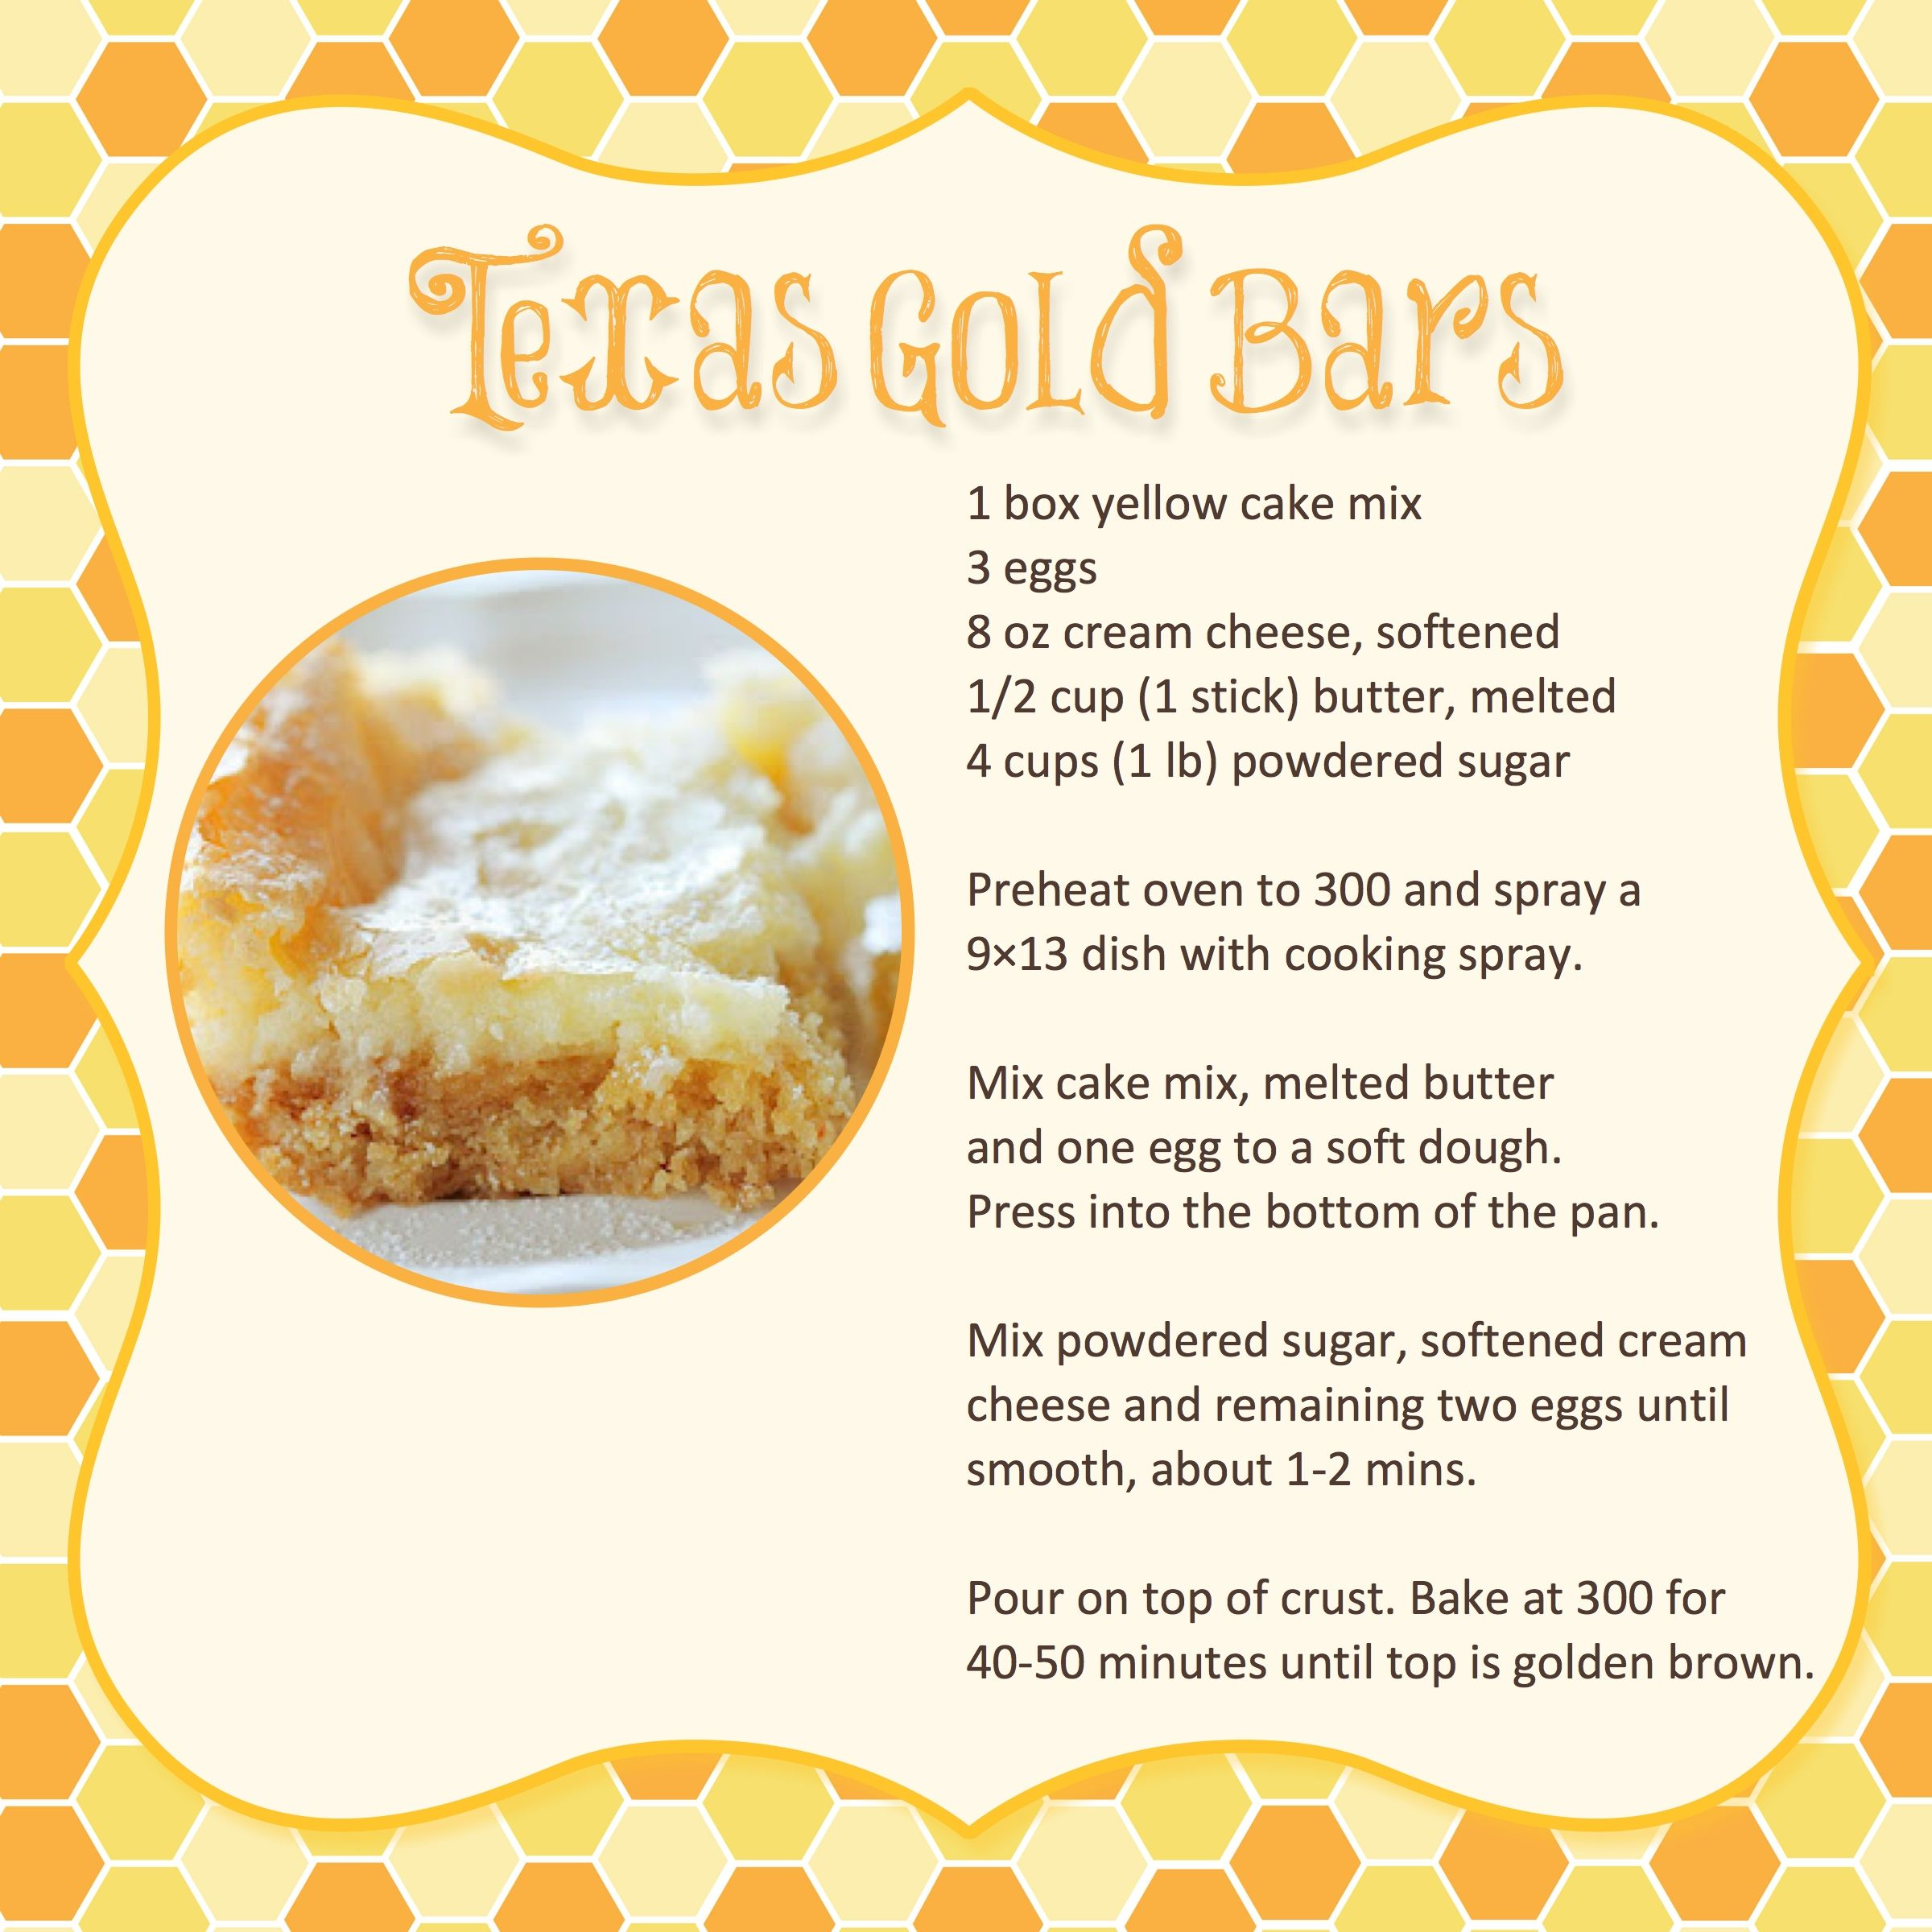 "Great easy dessert recipe for Girls Night Out Gatherings or Covered Dish Events...AND it's printable too.  Just print the image and trim to find an 8"" x 8"" page perfect for a recipe book formed by using an empty scrapbook."